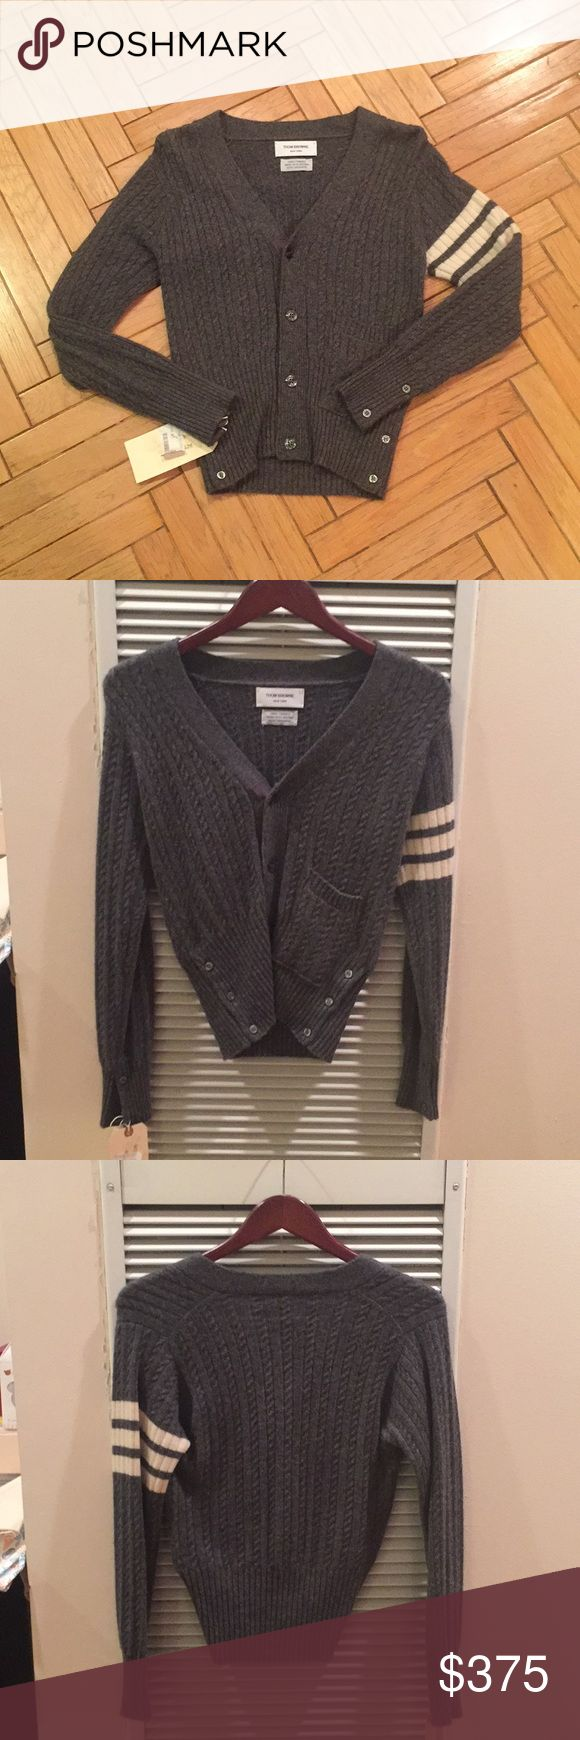 🆕Thom Browne Hand Framed Gray Cashmere Sweater 🆕Thom Browne Hand Framed Gray 100% Cashmere Sweater  Super soft LUXE sweater - the finest cashmere.   Made it in Great Britain   Purchased at a Gilt sample sale. Never worn! This is a steal and 100% authentic!   Last pic of model is for reference of size and look but is not of the actual piece which is reflected in every other photo.   Reasonable offers will be considered. Thom Browne Sweaters Cardigans